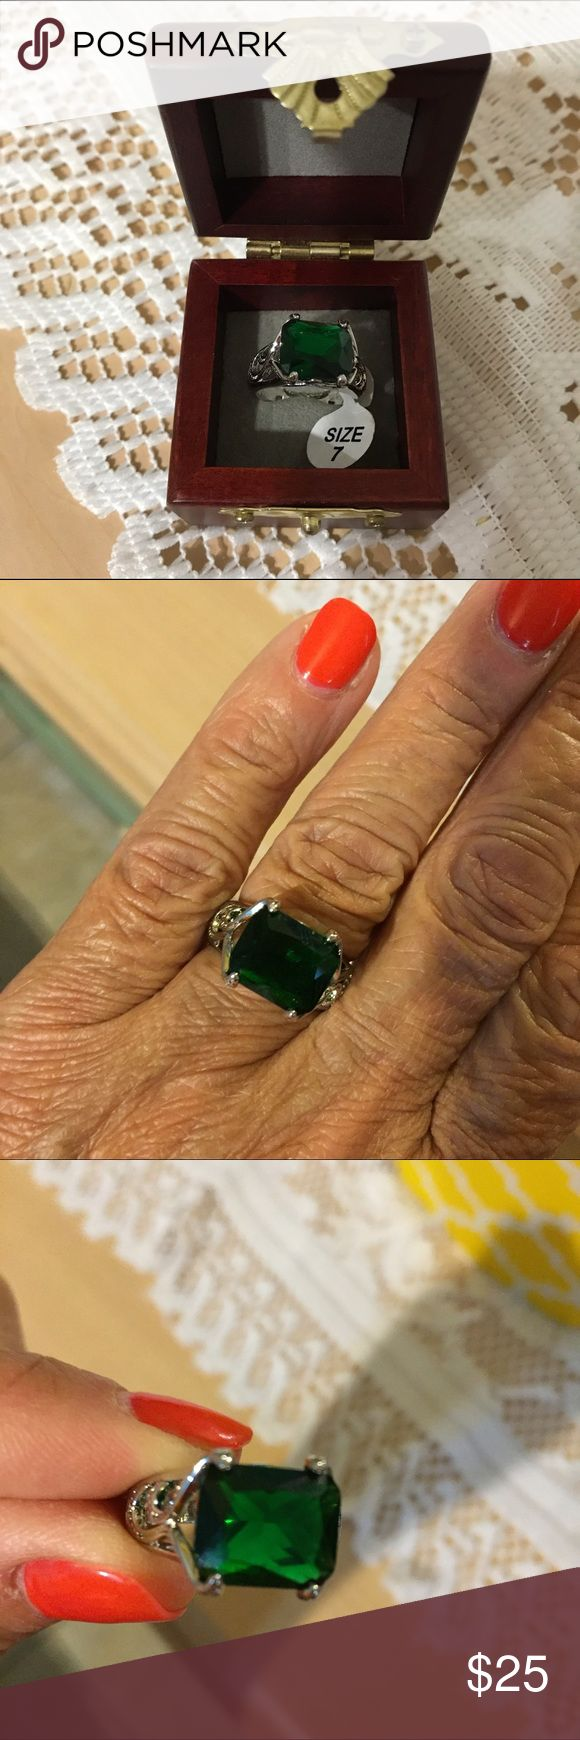 🆕 Antique Green Emerald Ring Gorgeous antique emerald green square ring with inlay settings woman ring jewelry gift for her, new in box. Jewelry Rings